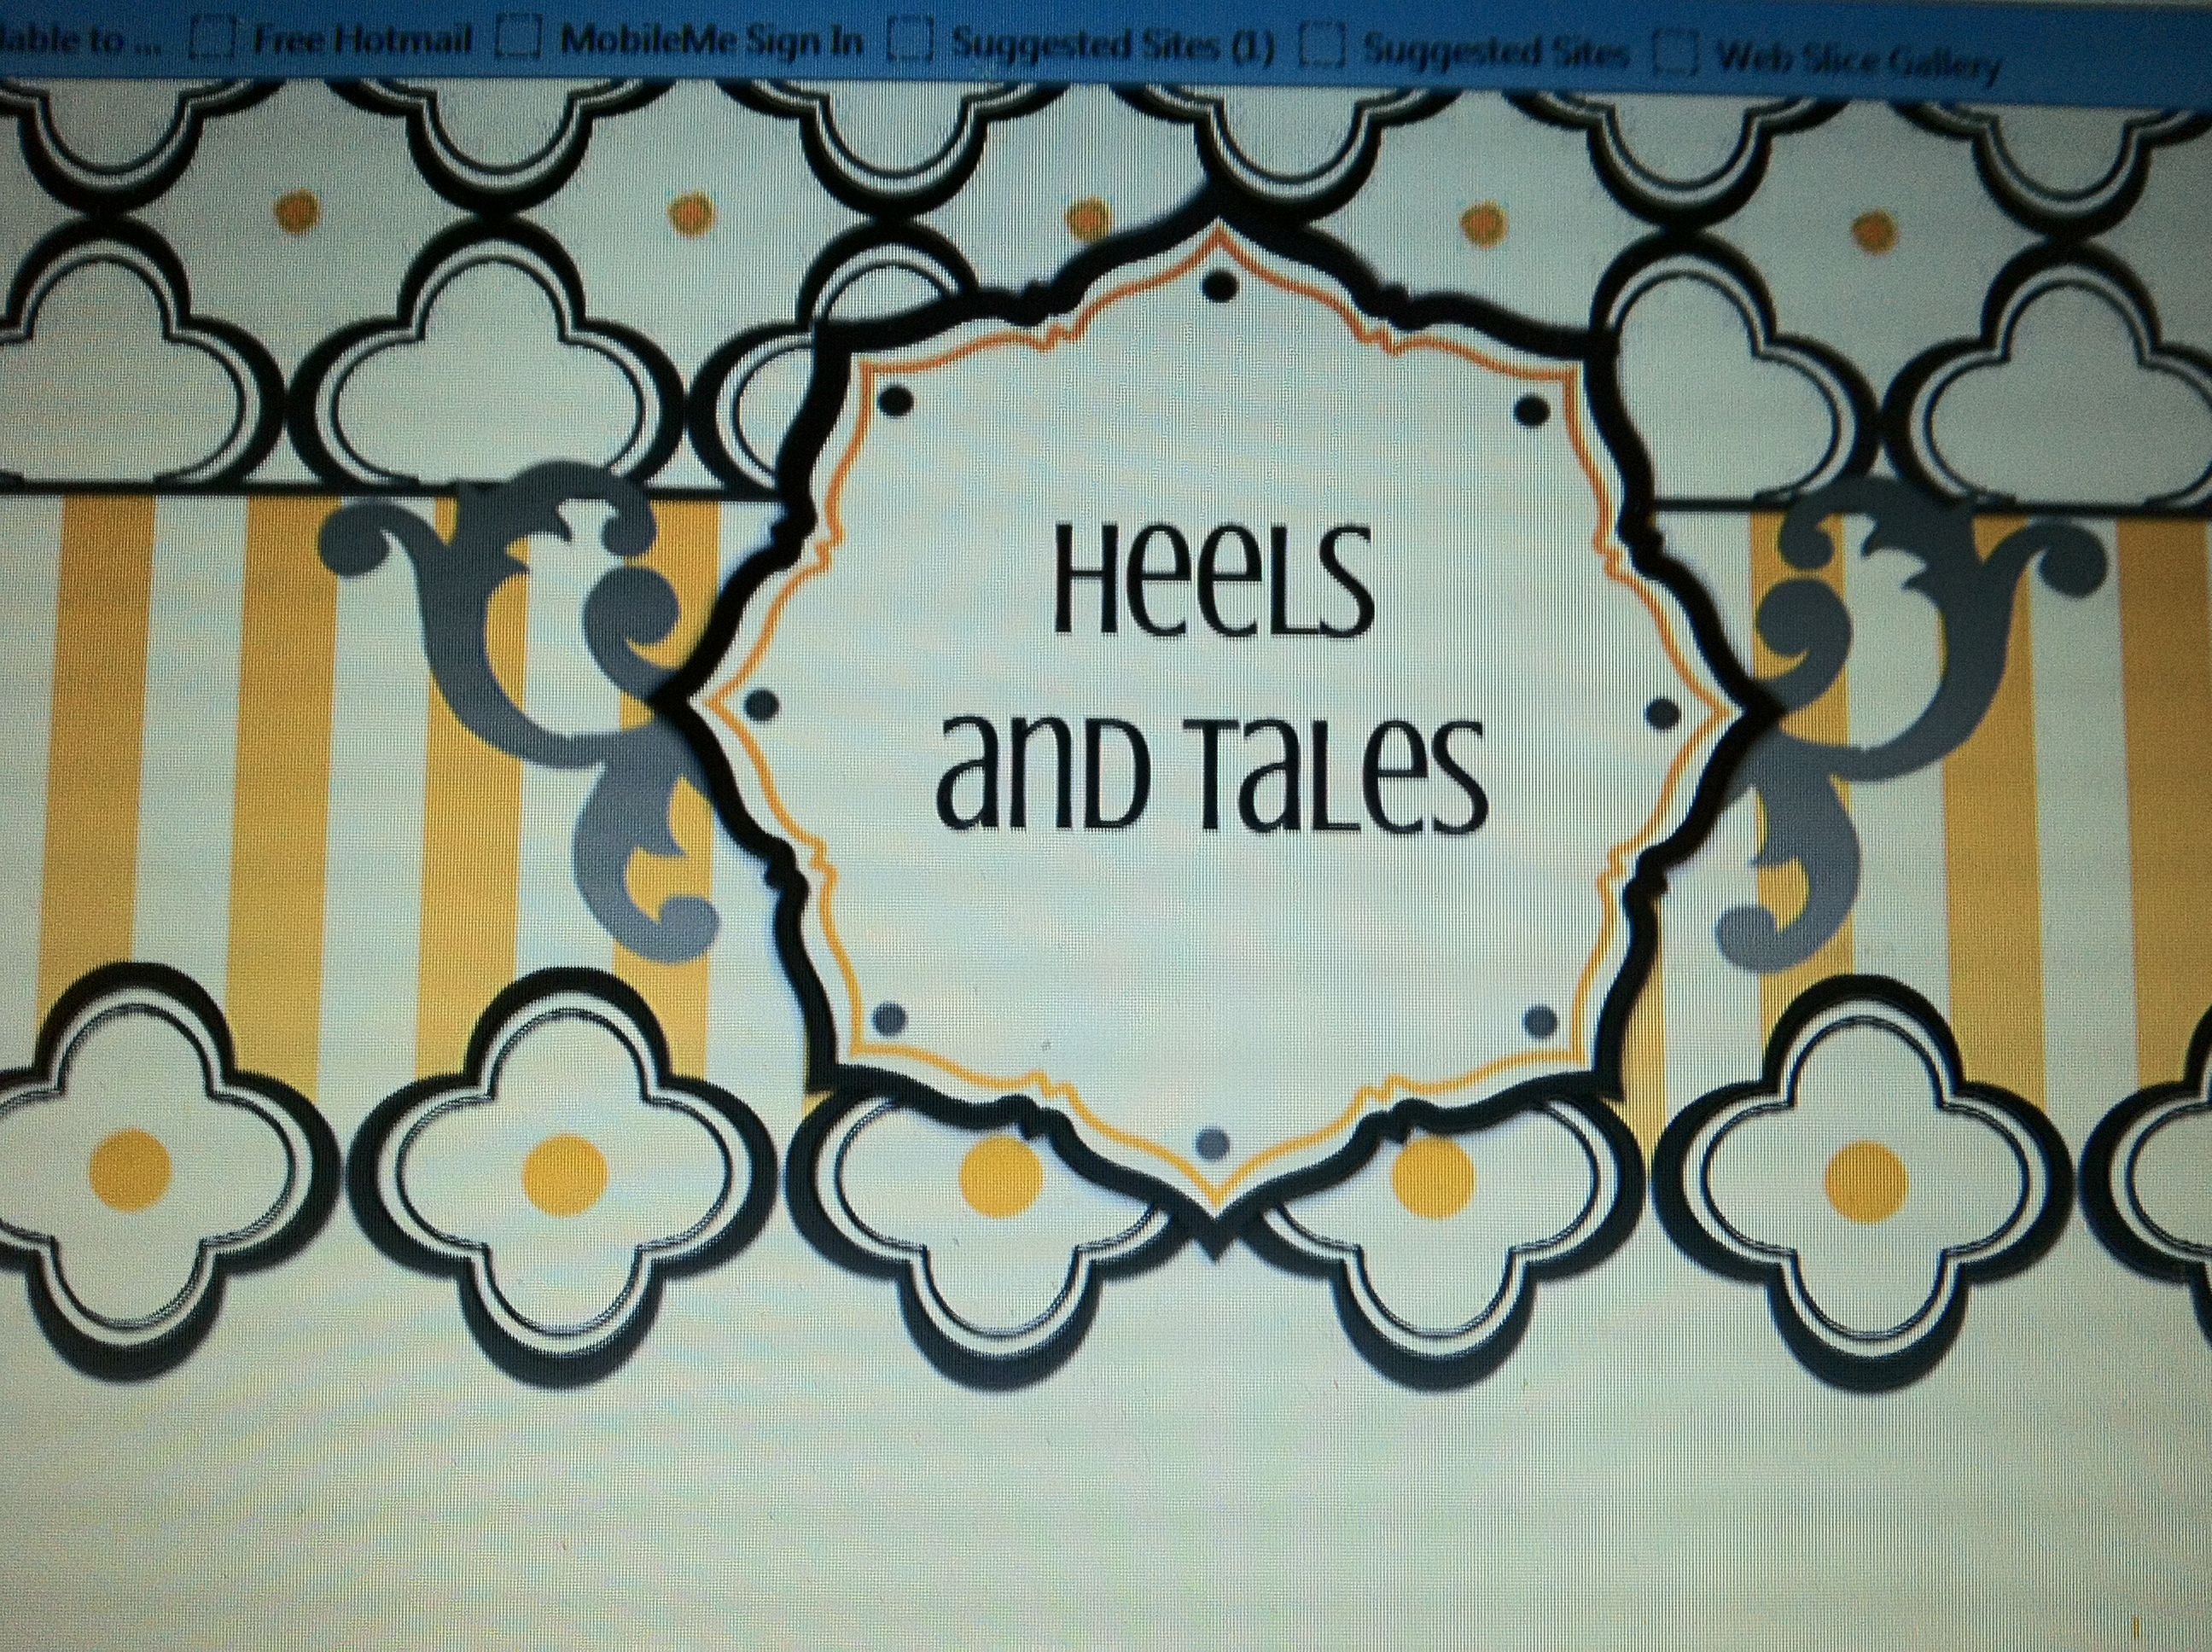 Heels and Tales - My blog on fashion and stories about my life adventures.